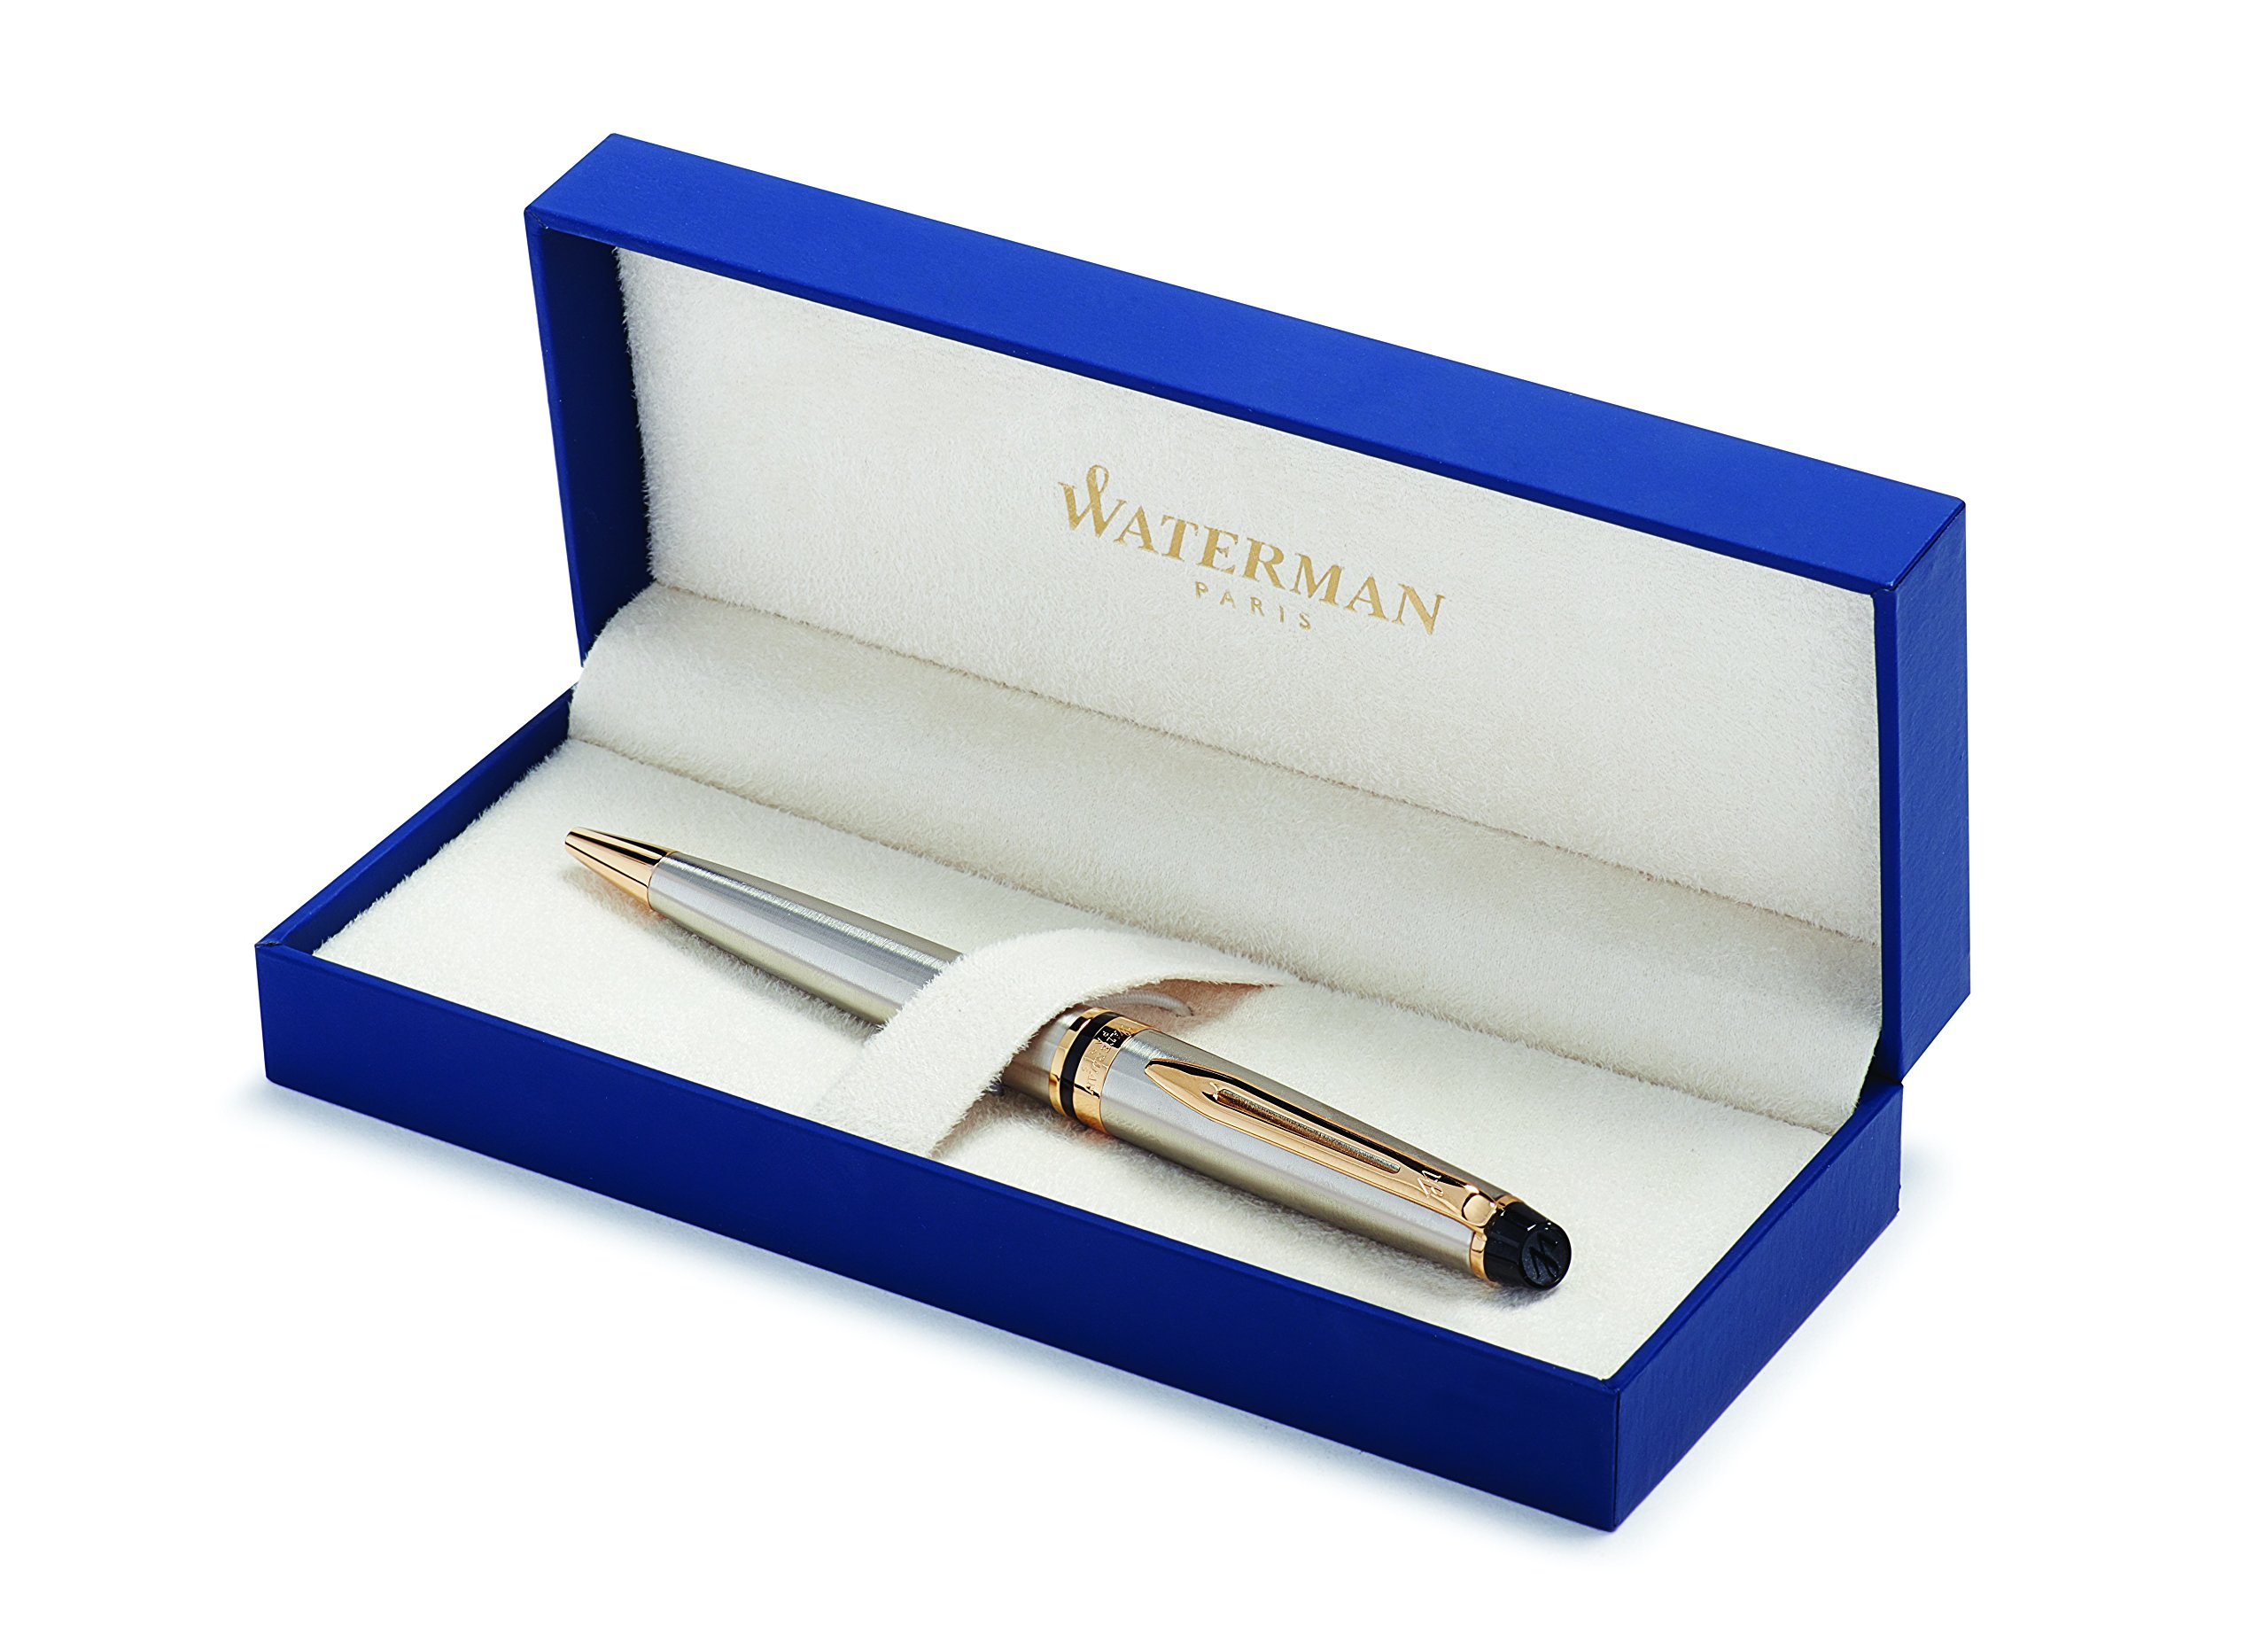 Waterman Expert Stainless Steel with Golden Trim, Ballpoint Pen with Medium Blue refill (S0952000)